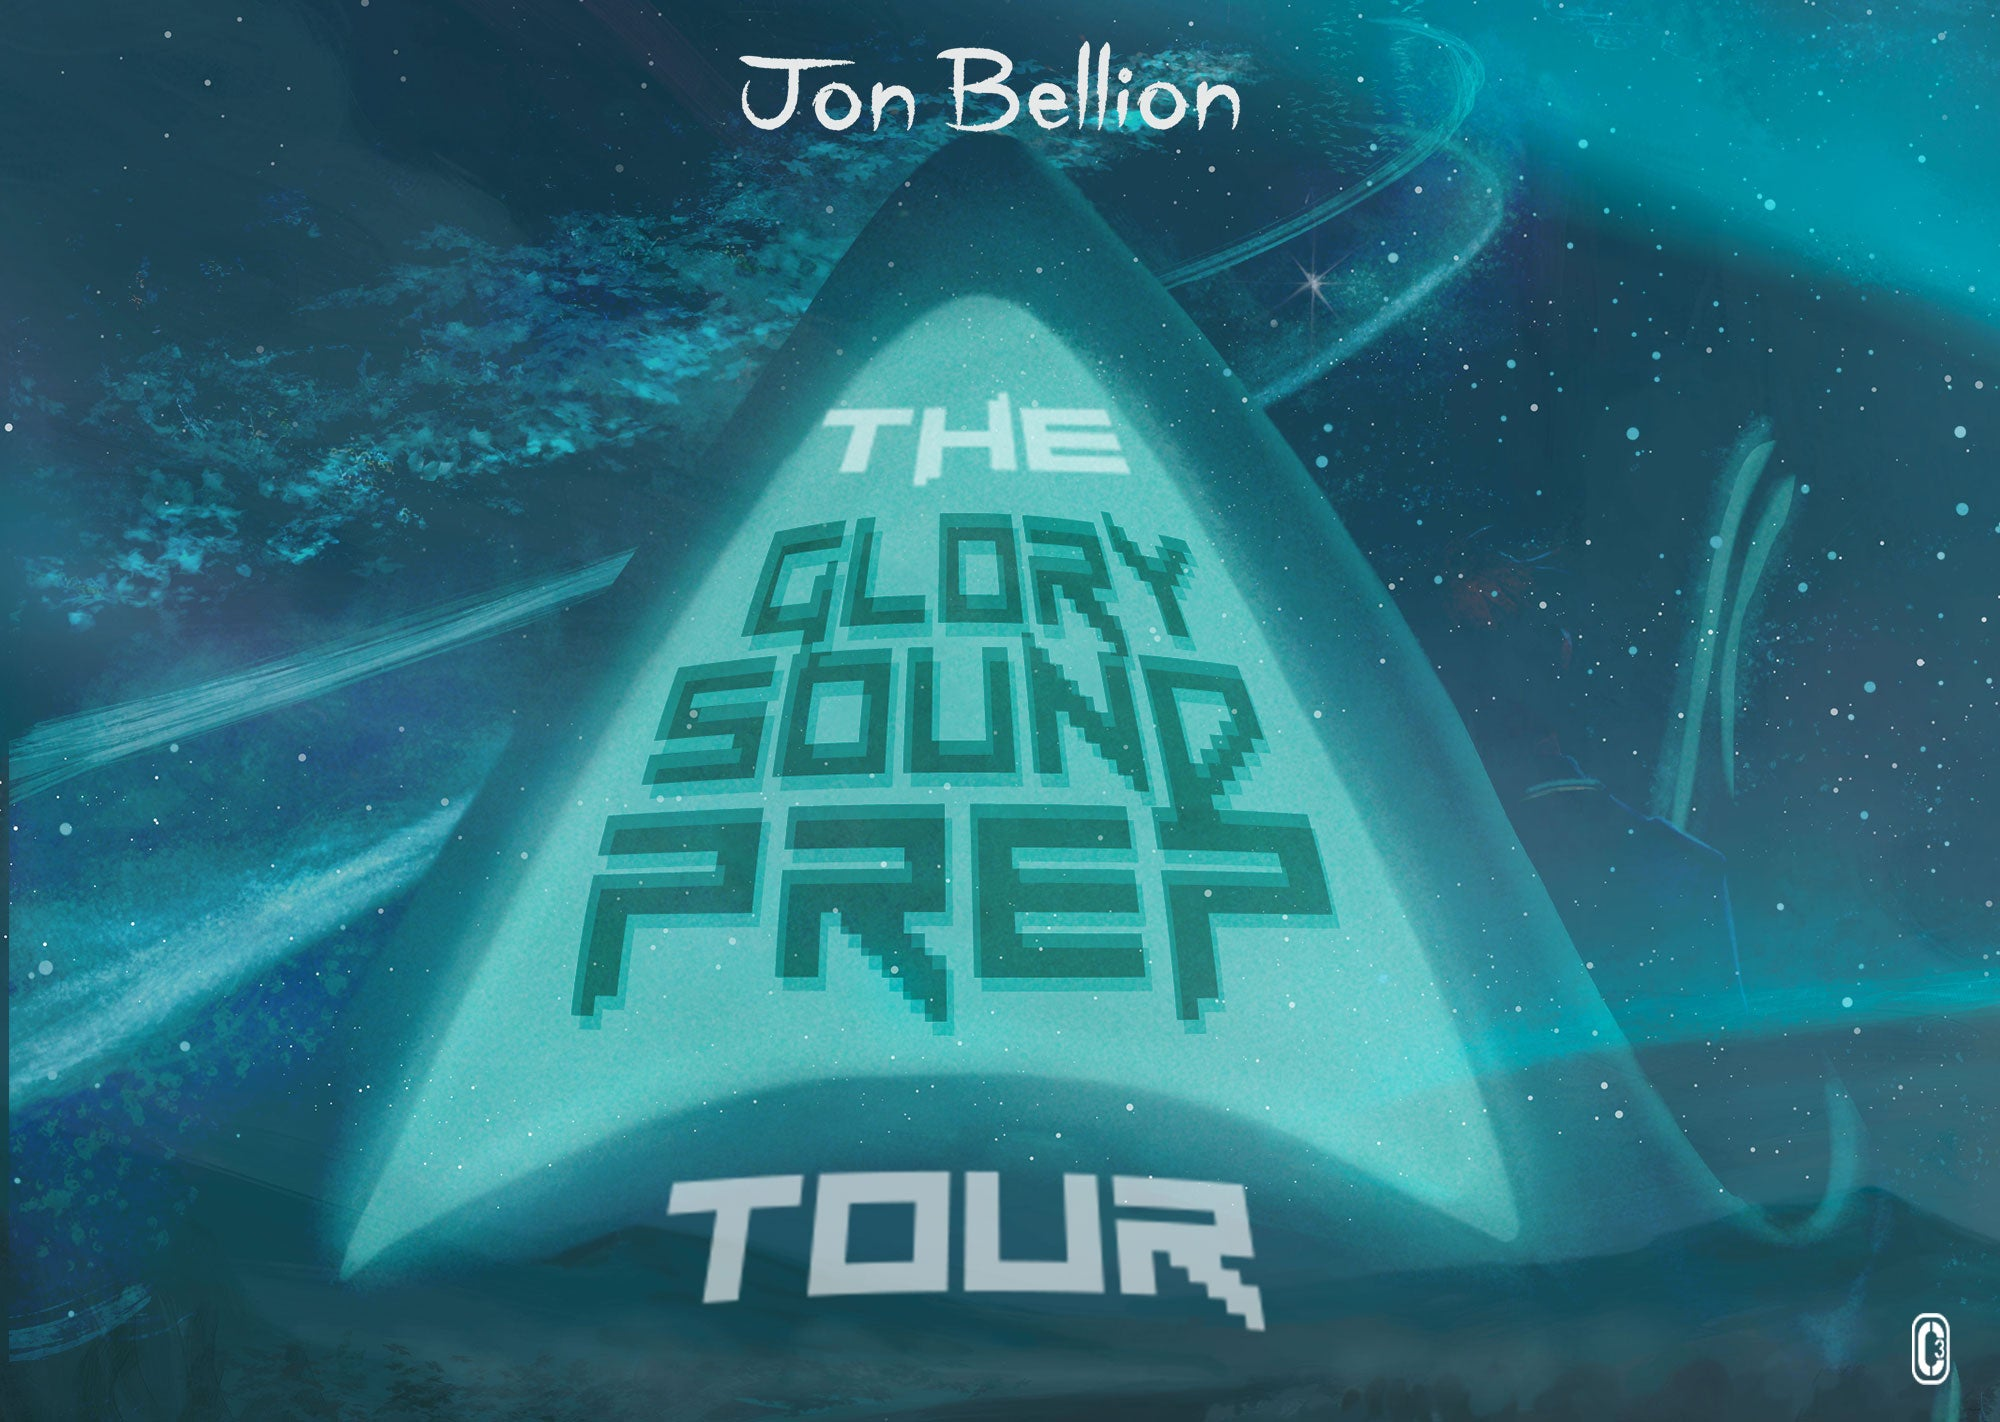 JON BELLION ANNOUNCES 2019 NORTH AMERICAN HEADLINE TOUR